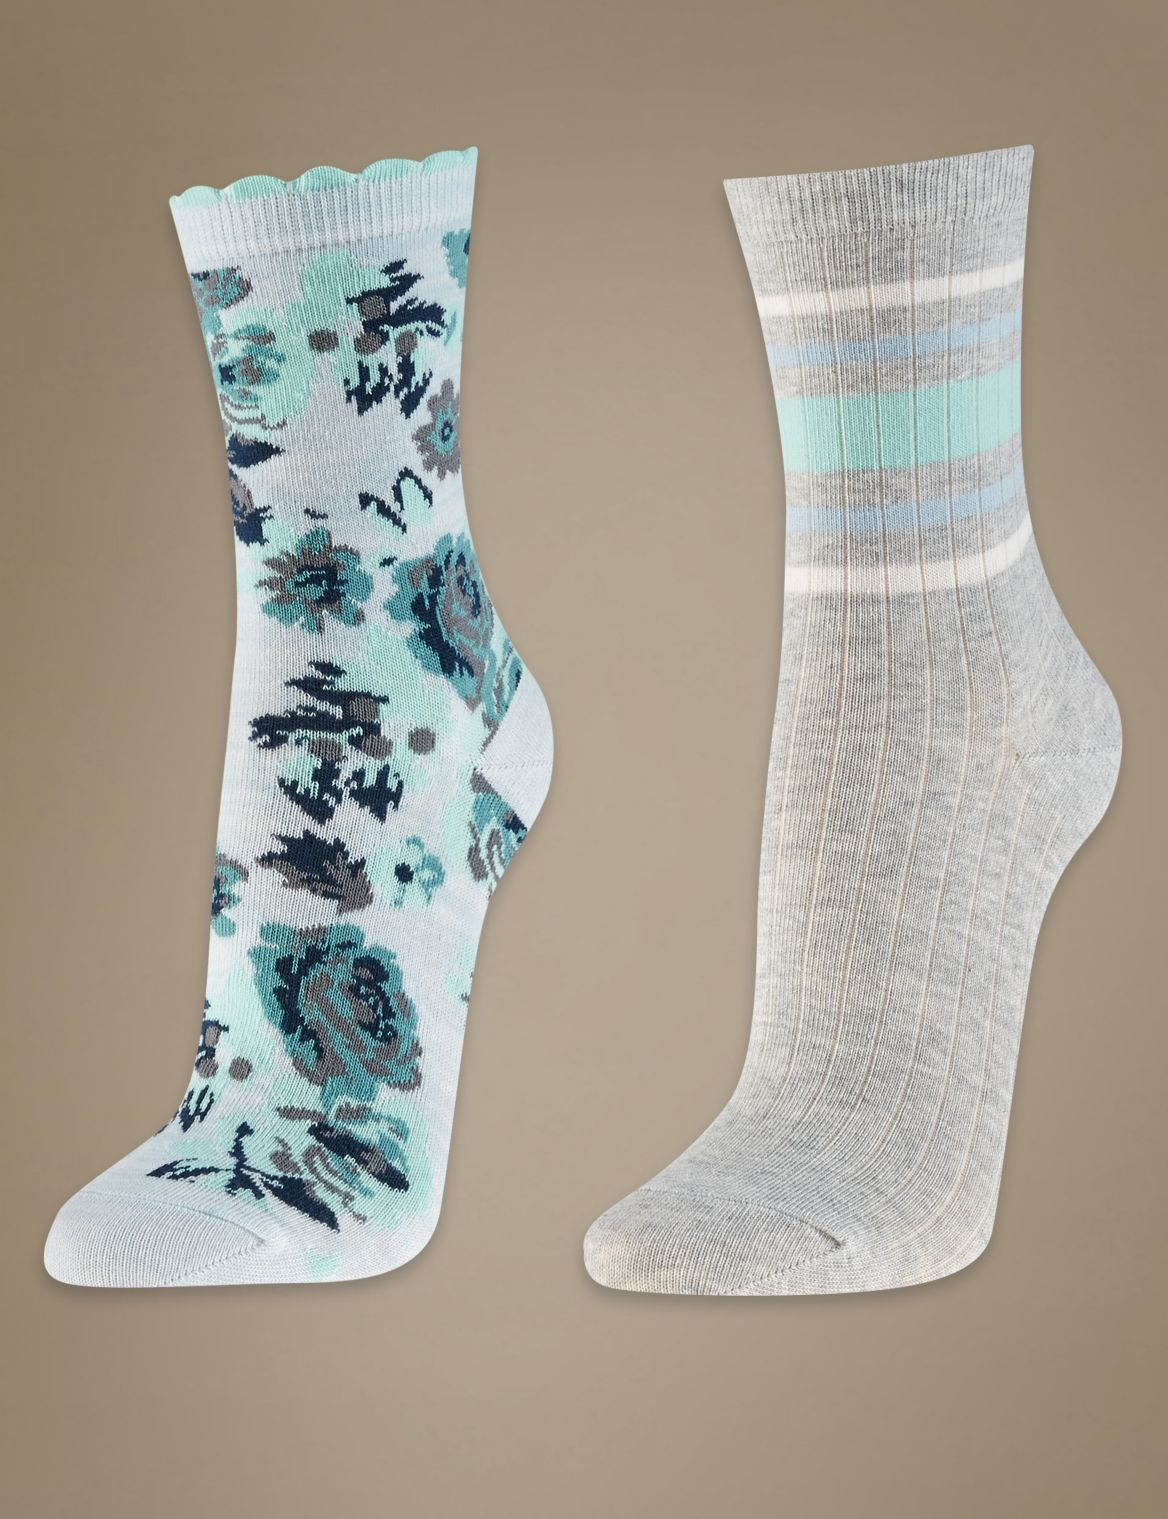 2 Pair Pack Ankle High Floral Socks light blue mix